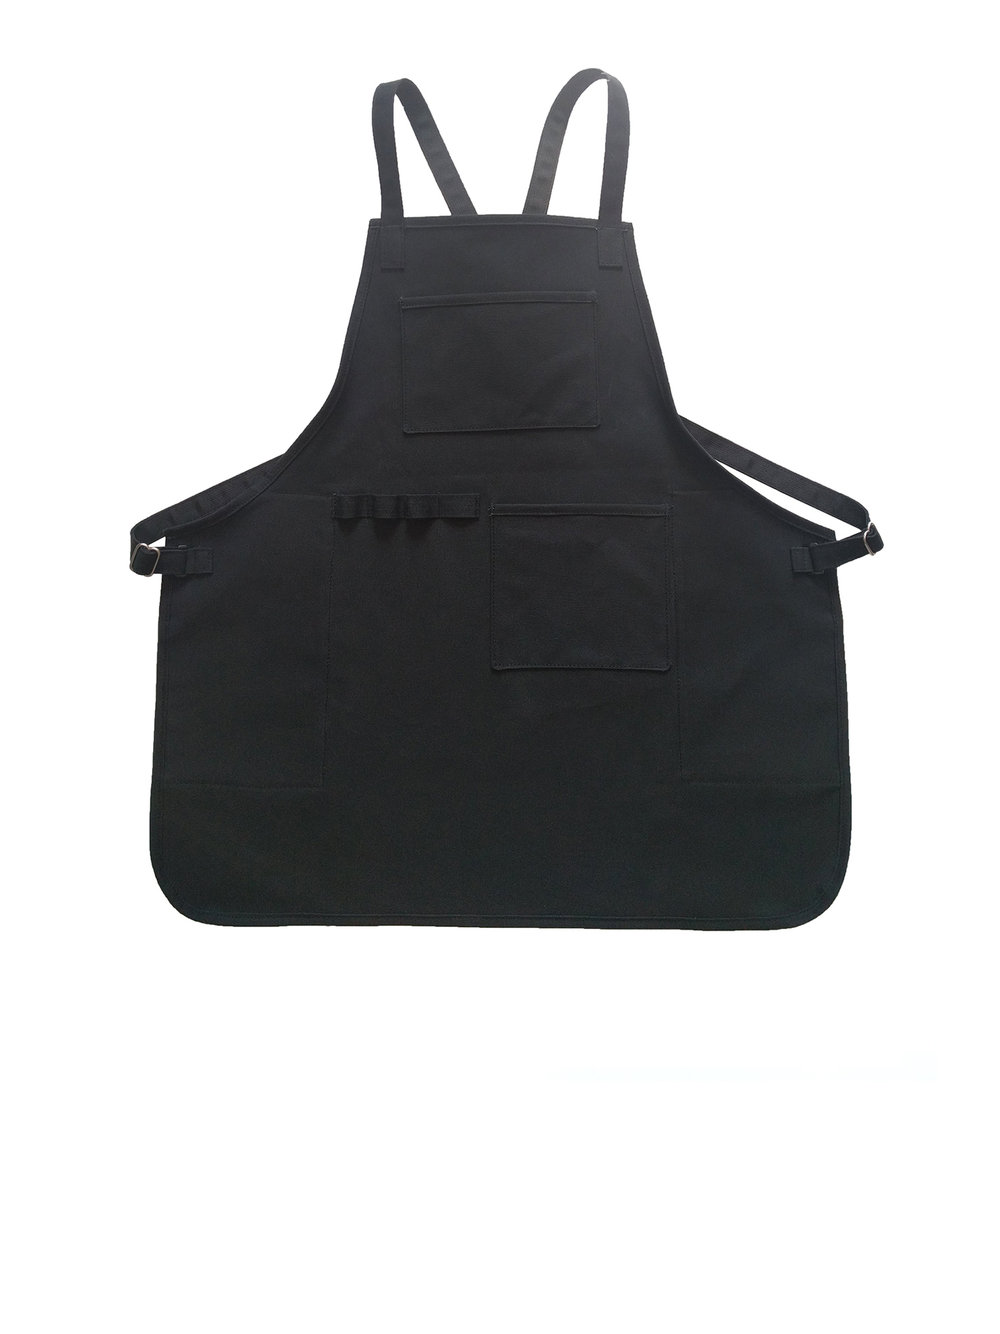 Apron - more colors available120.00$